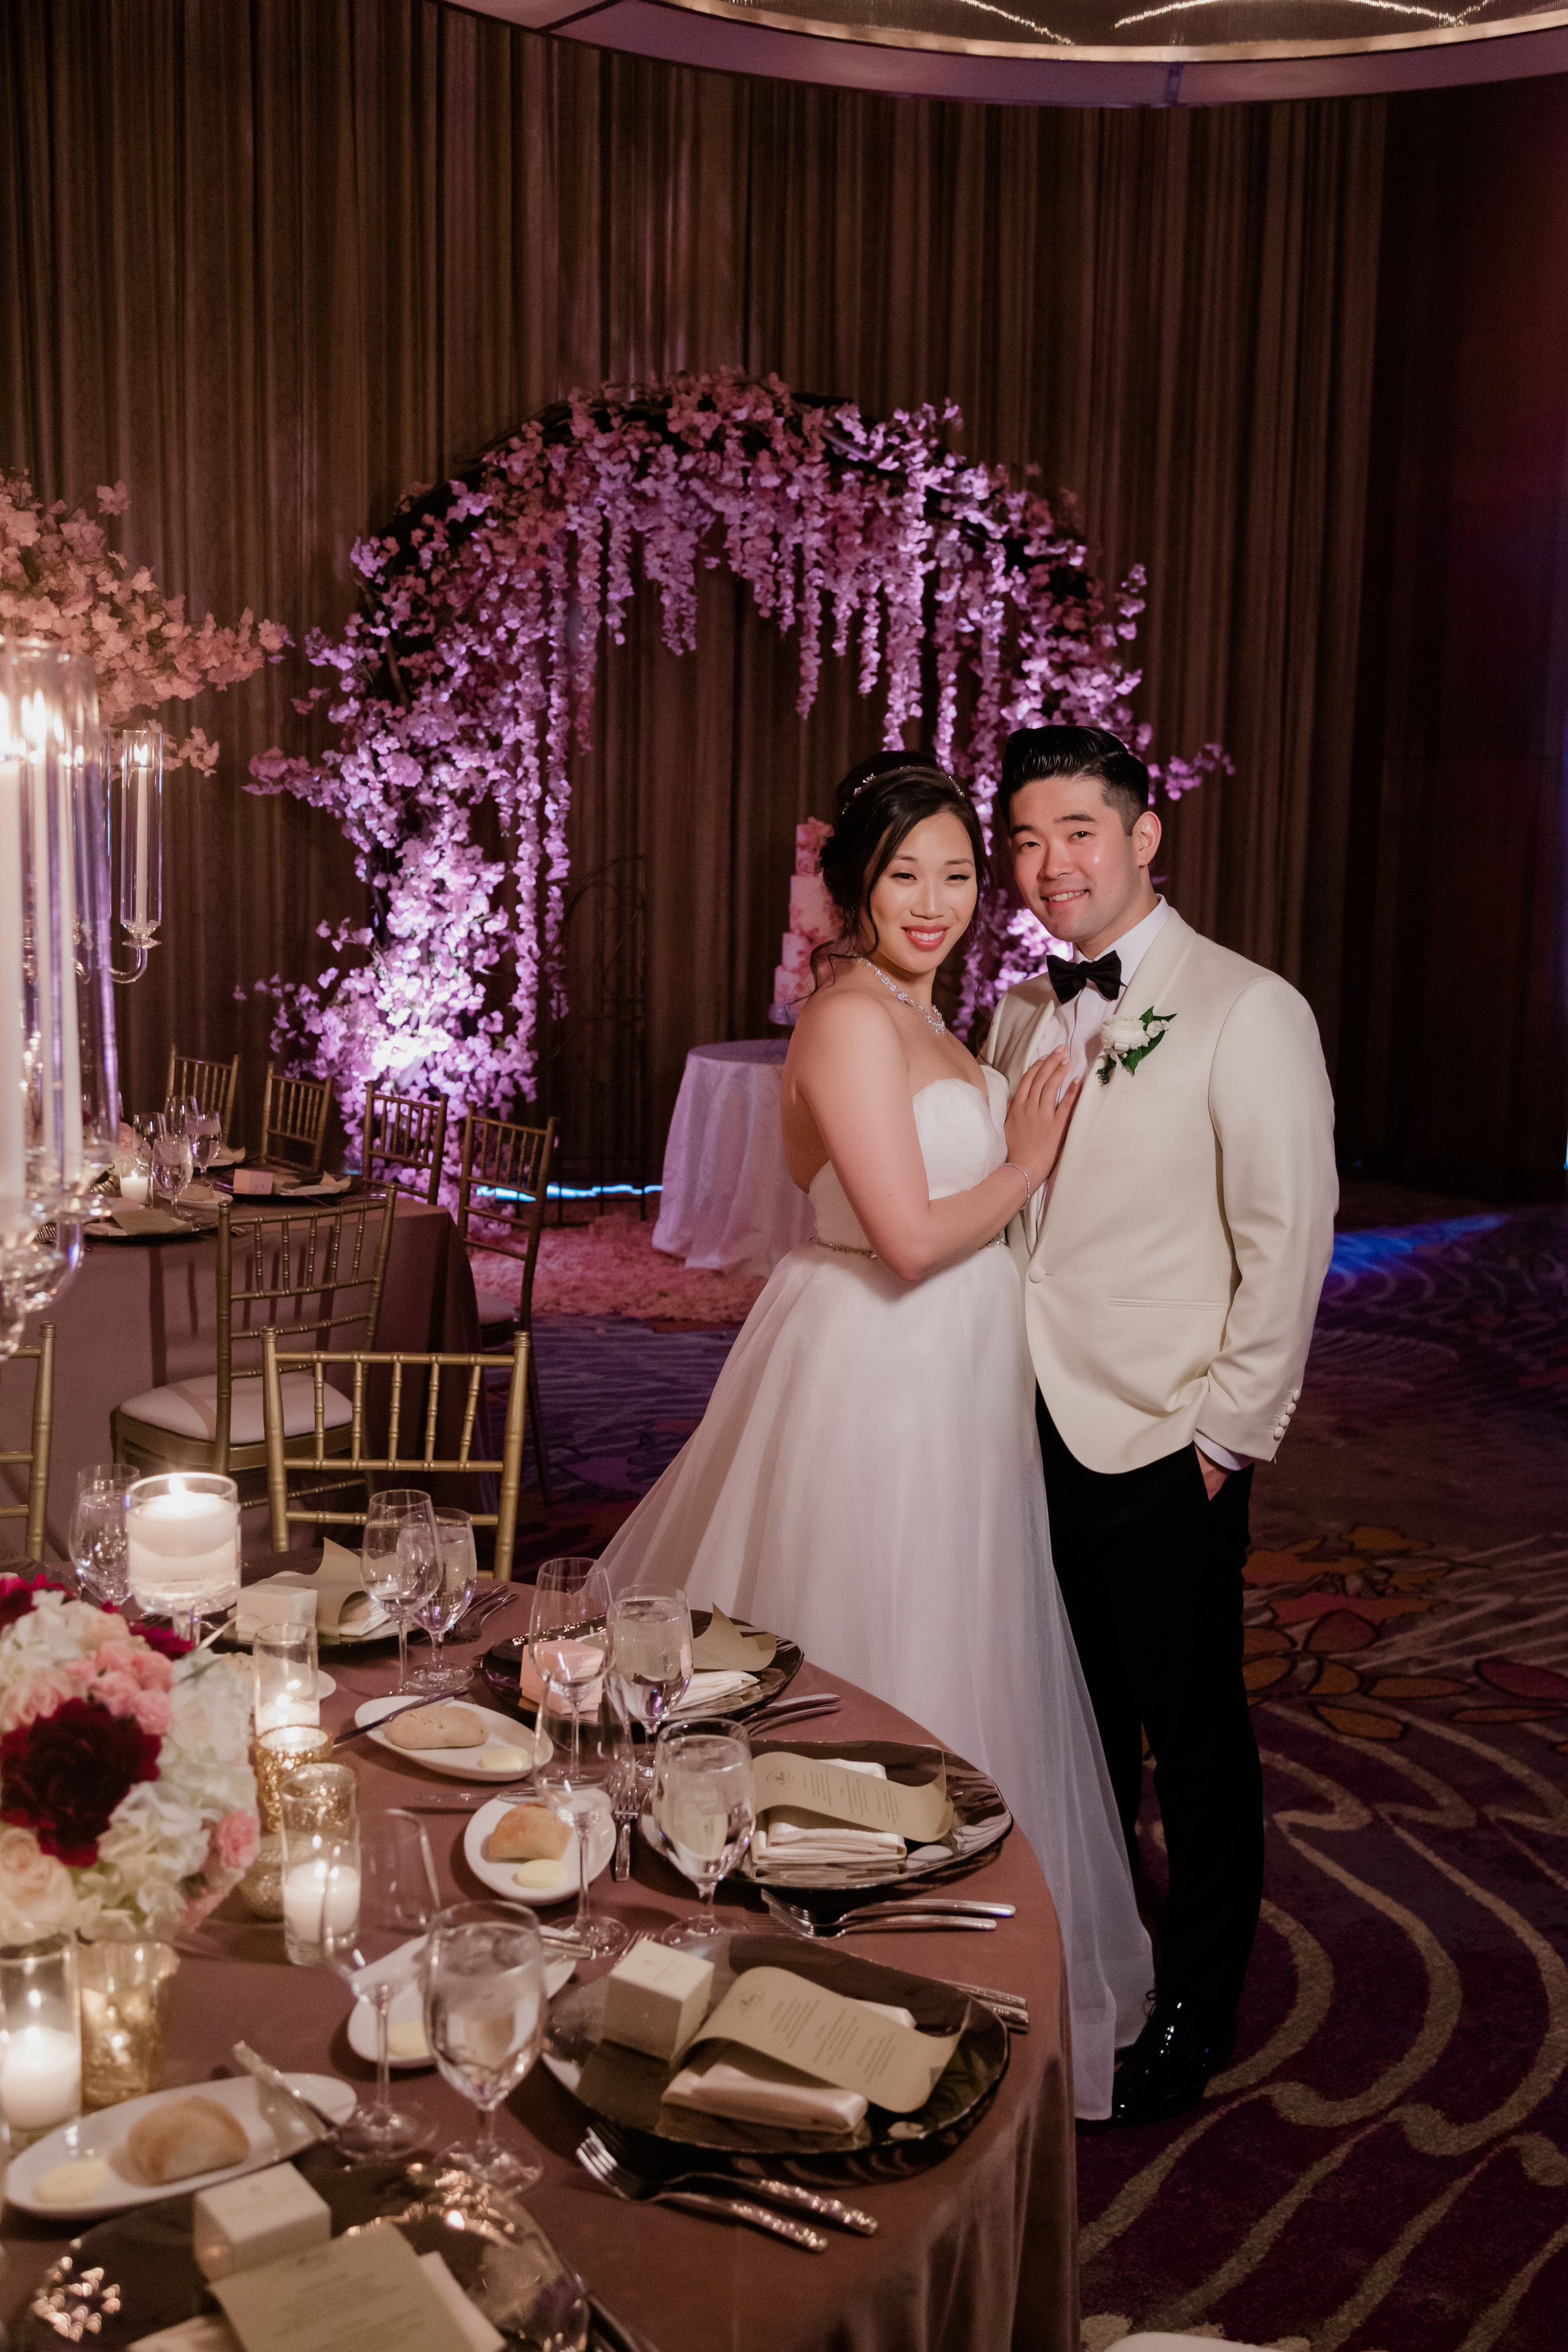 Bride and groom in a pink wedding reception with cherry blossom arch. Las Vegas Wedding Planner Andrea Eppolito. Photo by Adam Frazier.